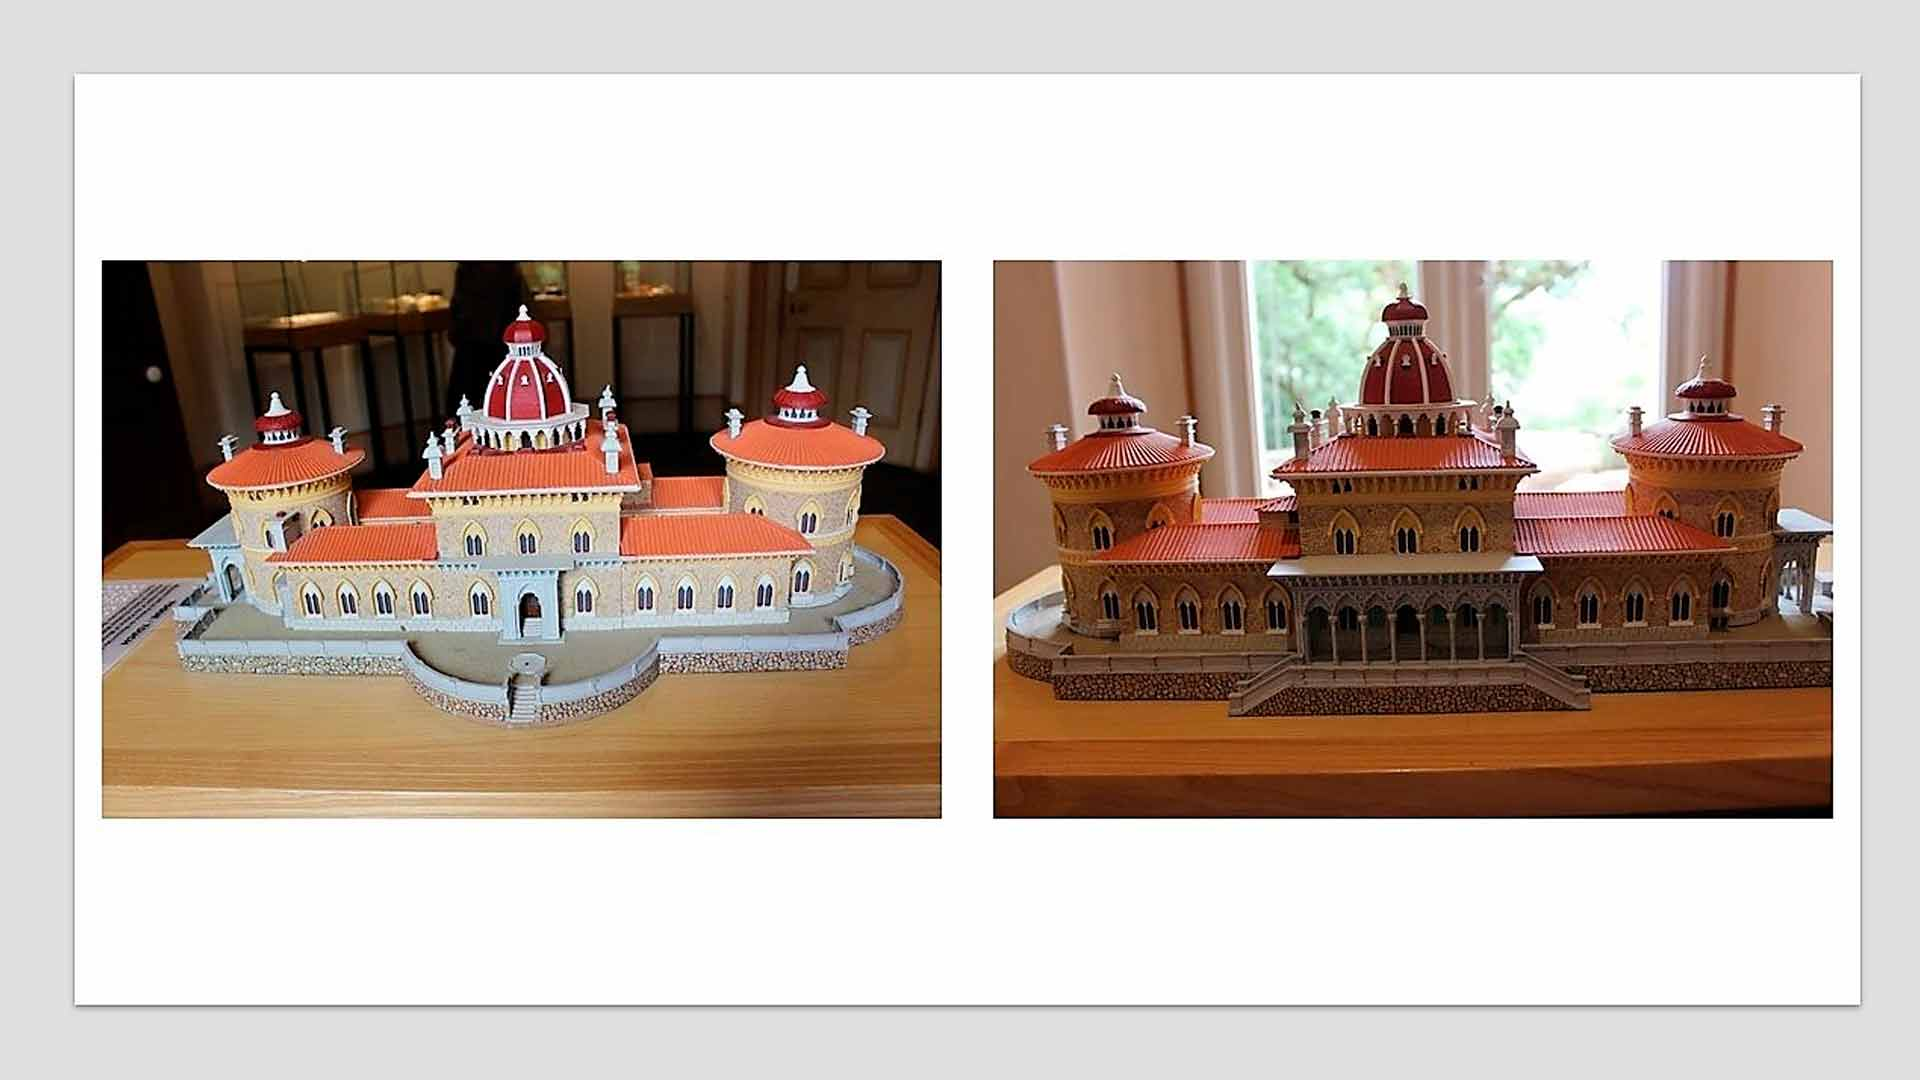 Maquete do Palácio de Monserrate